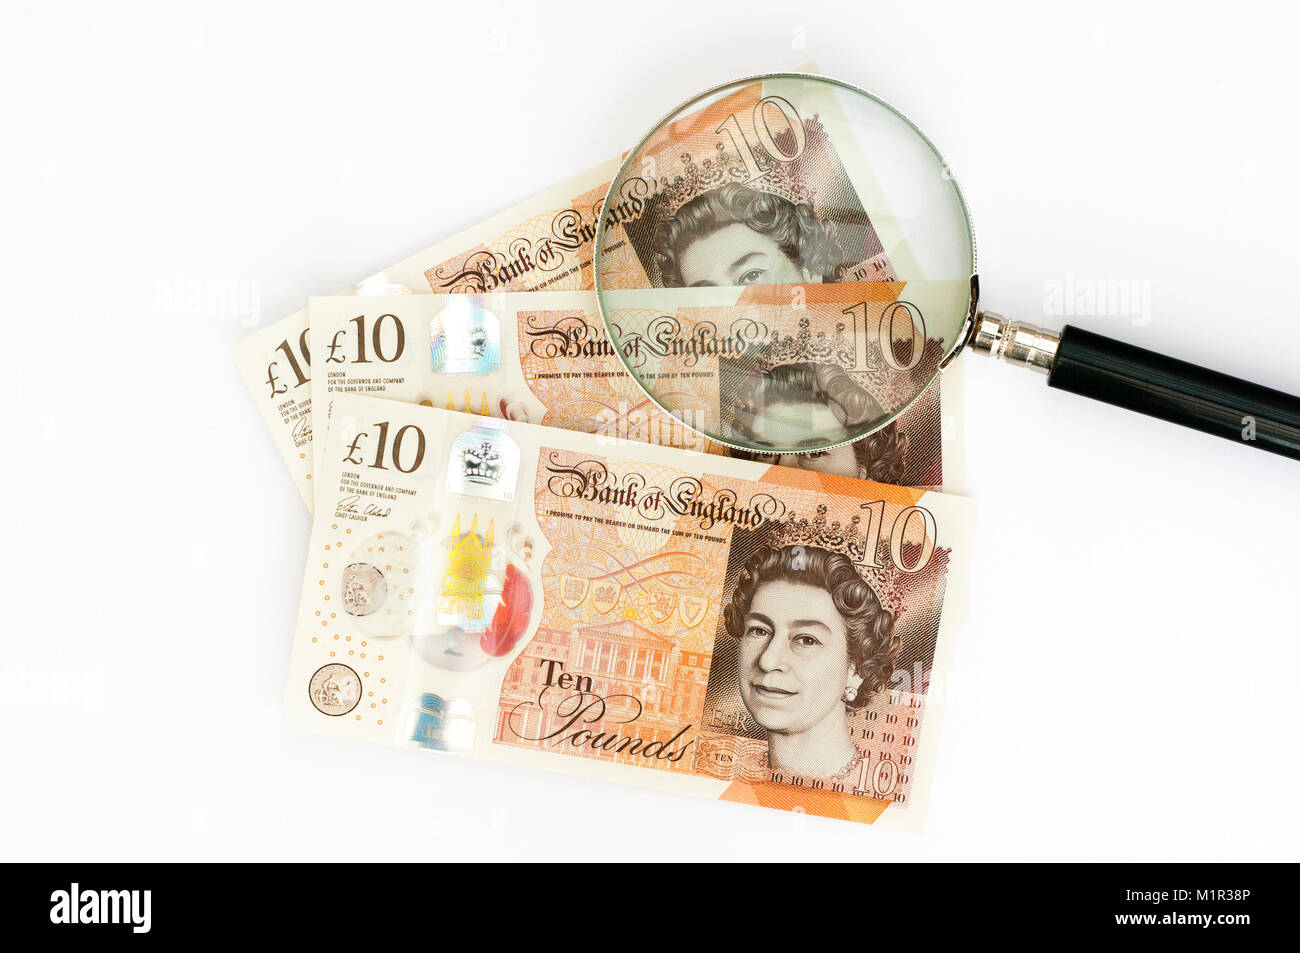 UK United Kingdom Polymer Ten 10 Pound Bank Notes under a magnifying glass - Stock Image